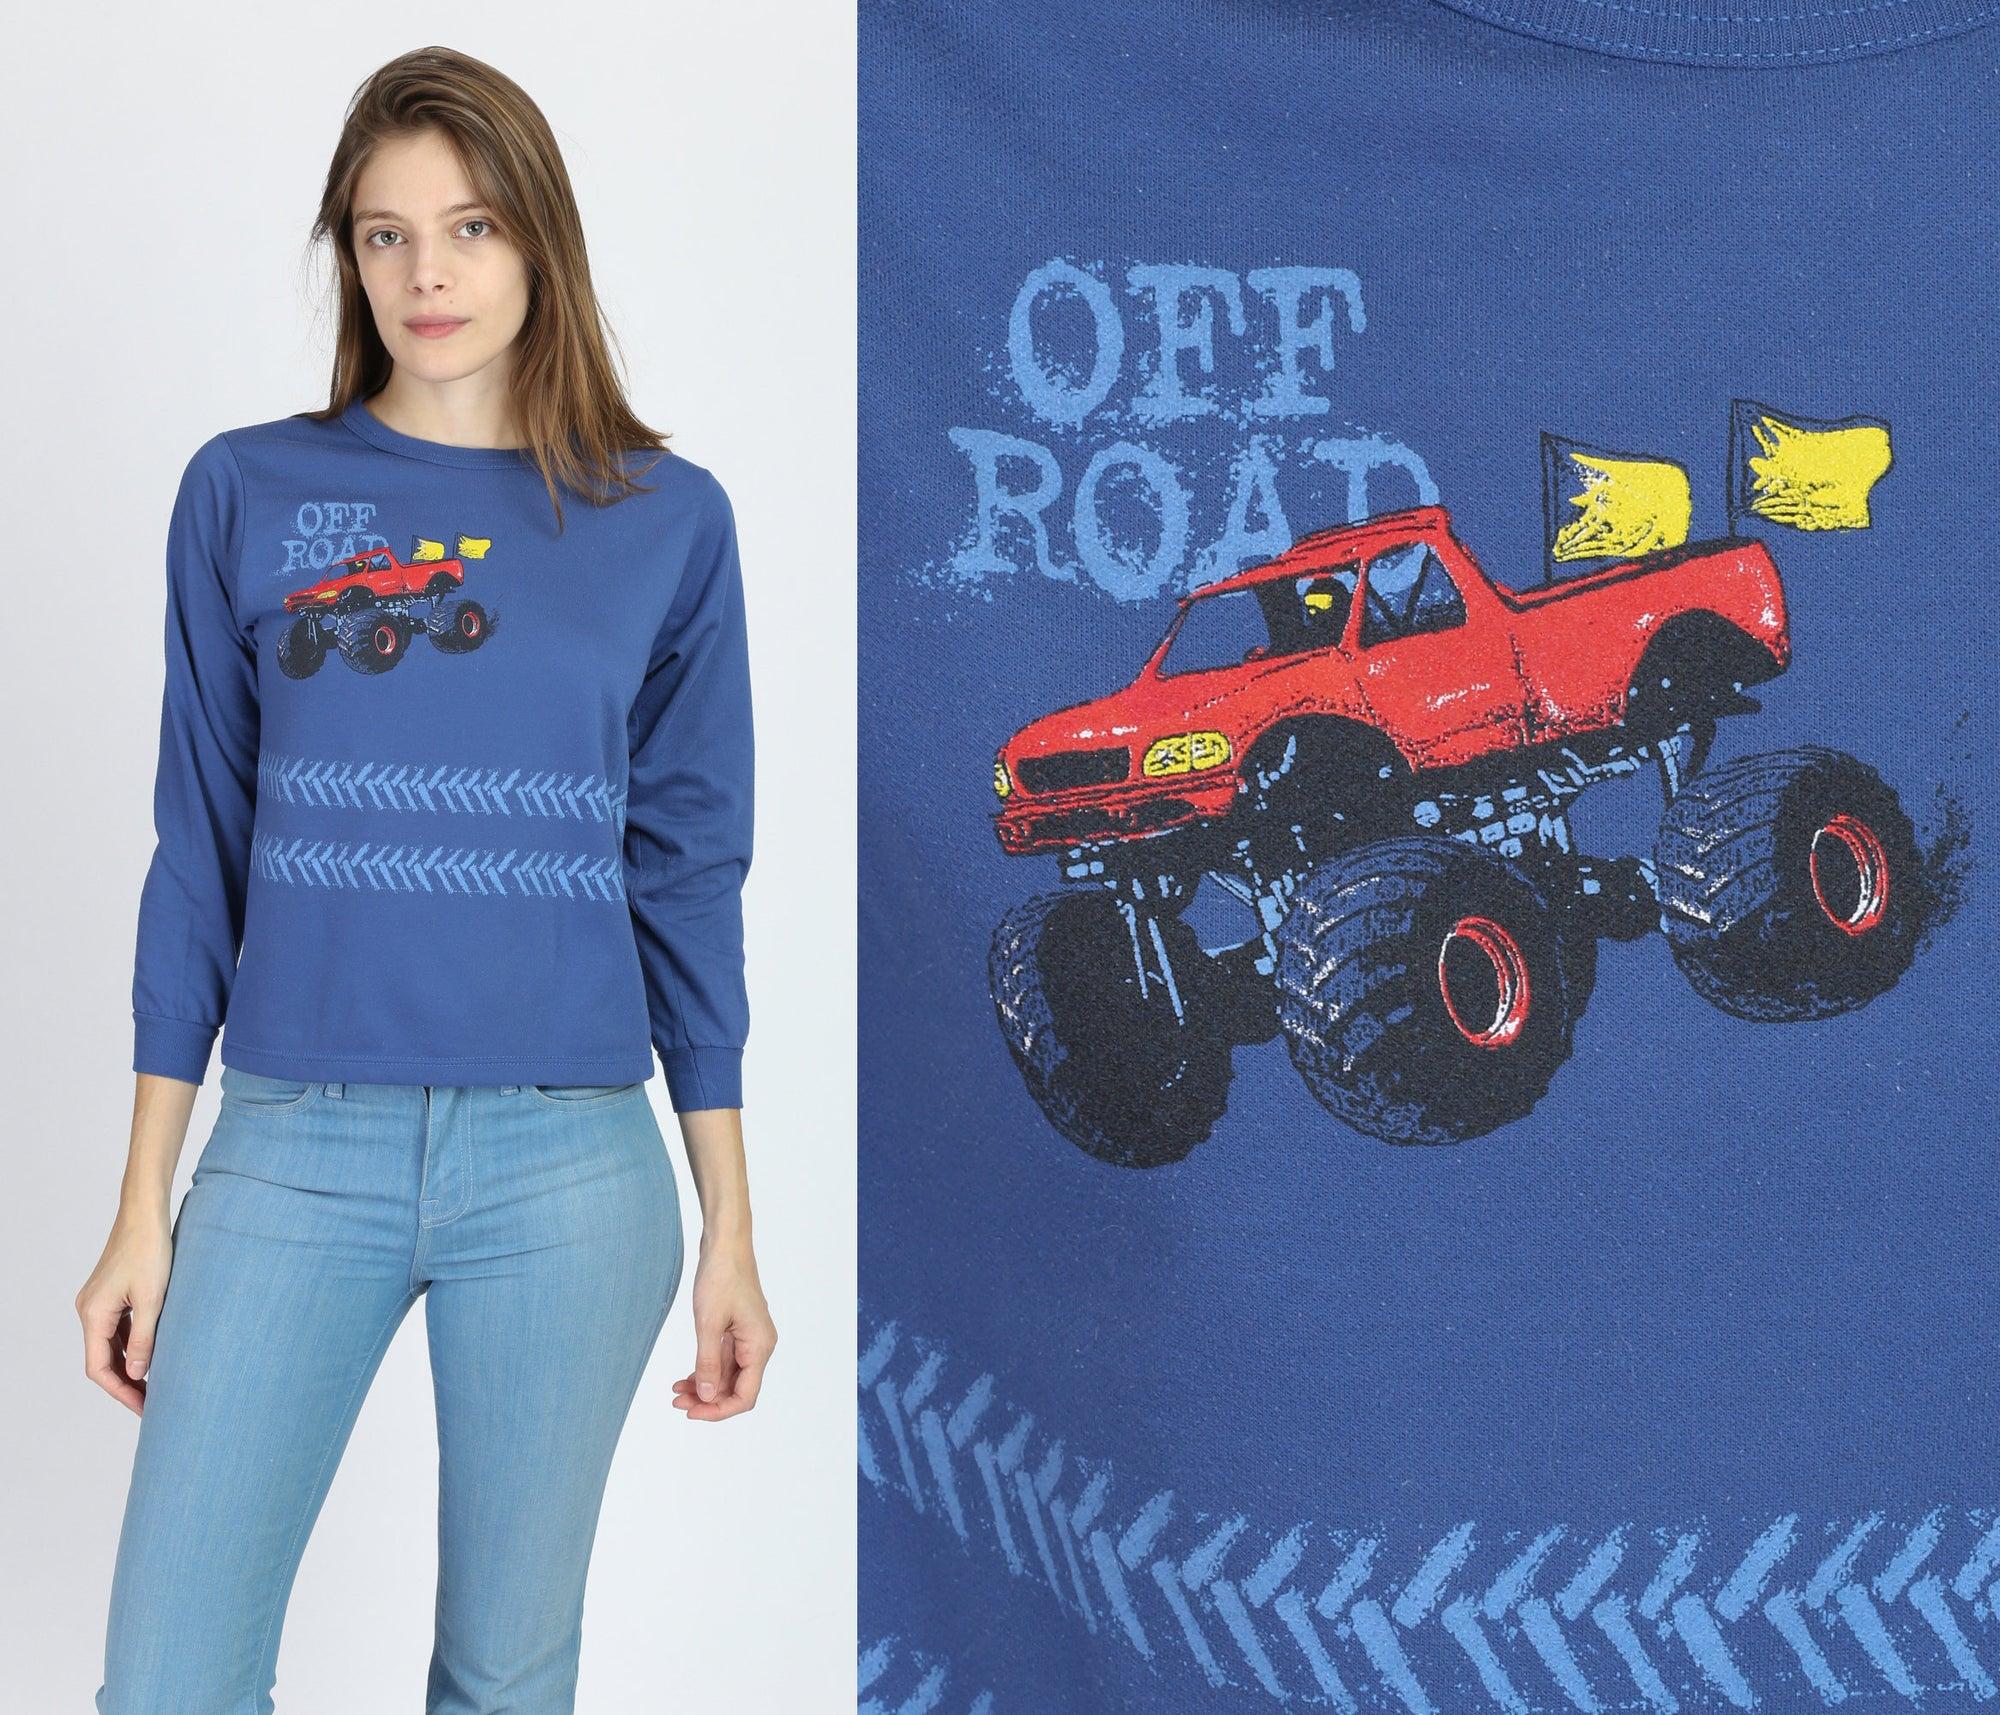 80s Off-Roading Long Sleeve Top - Extra Small